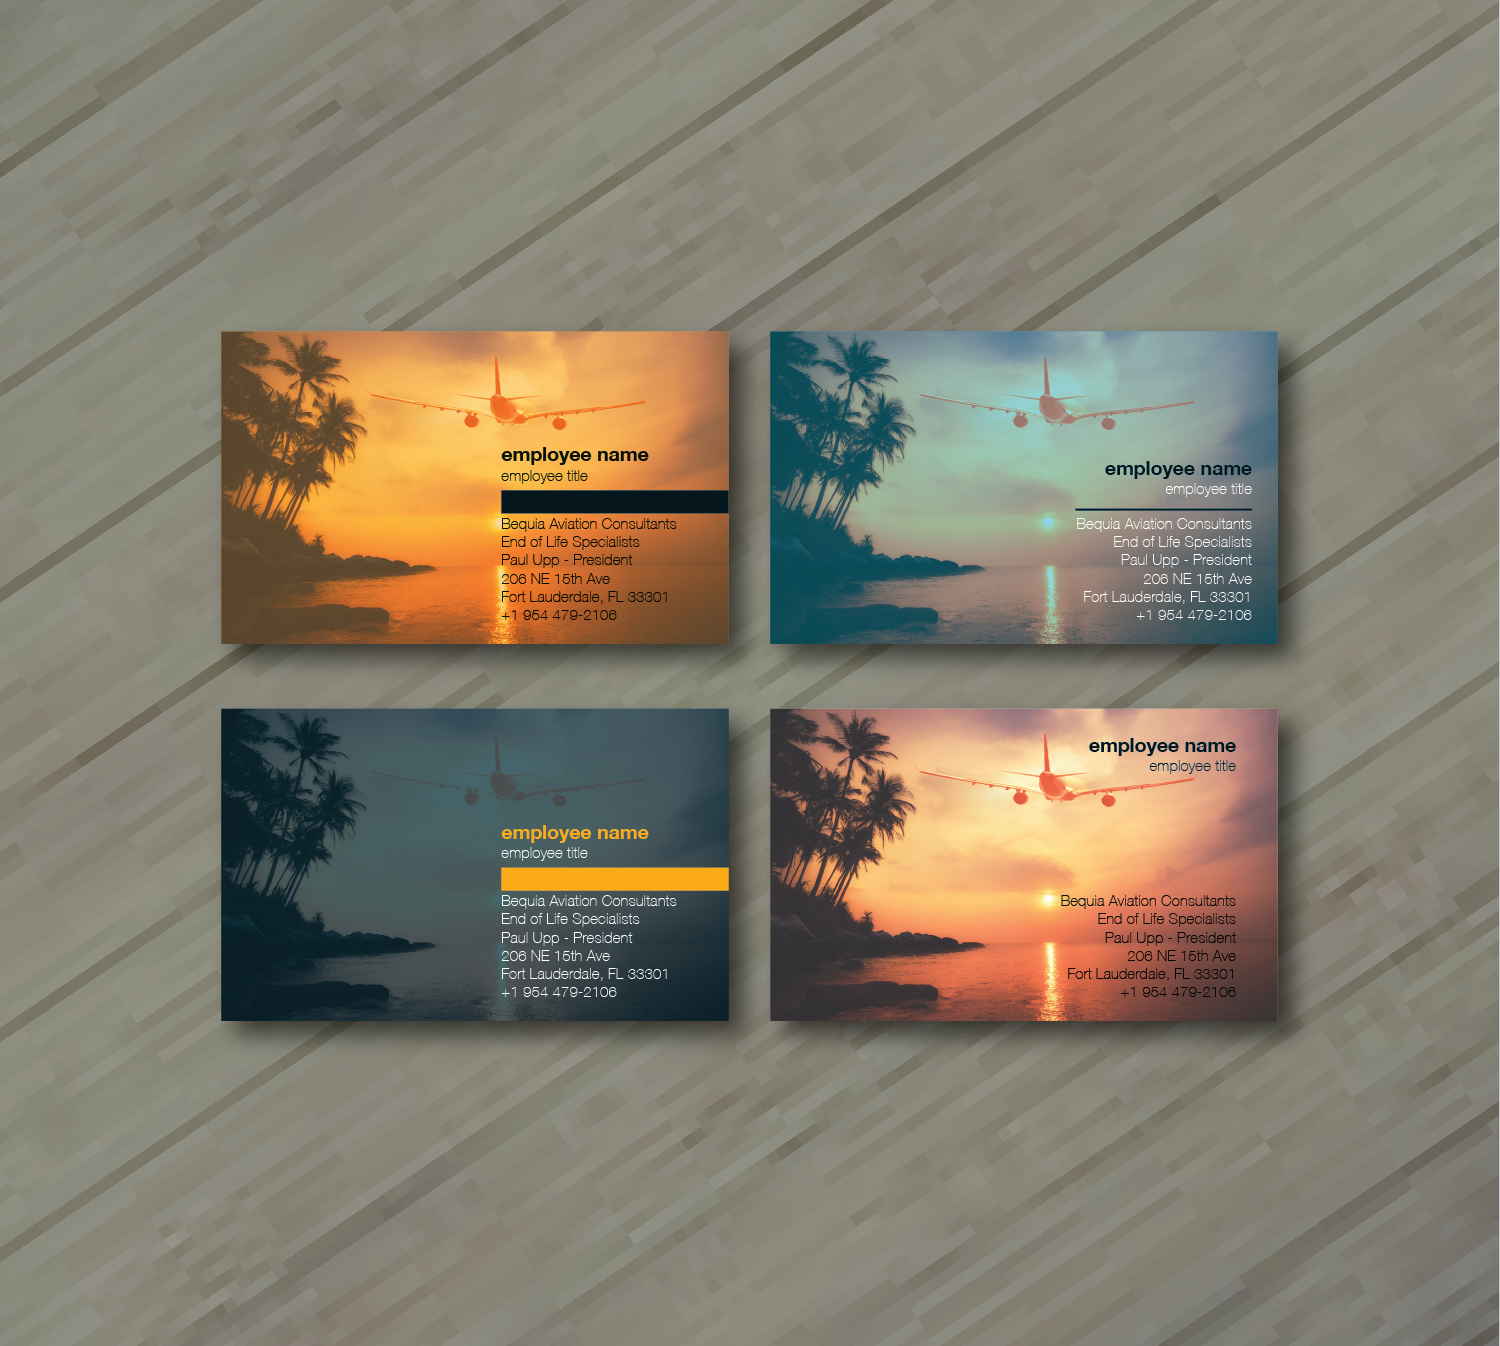 Professional upmarket aviation business card design for bequia business card design by balayat843 for freedom path marketing design 17689846 colourmoves